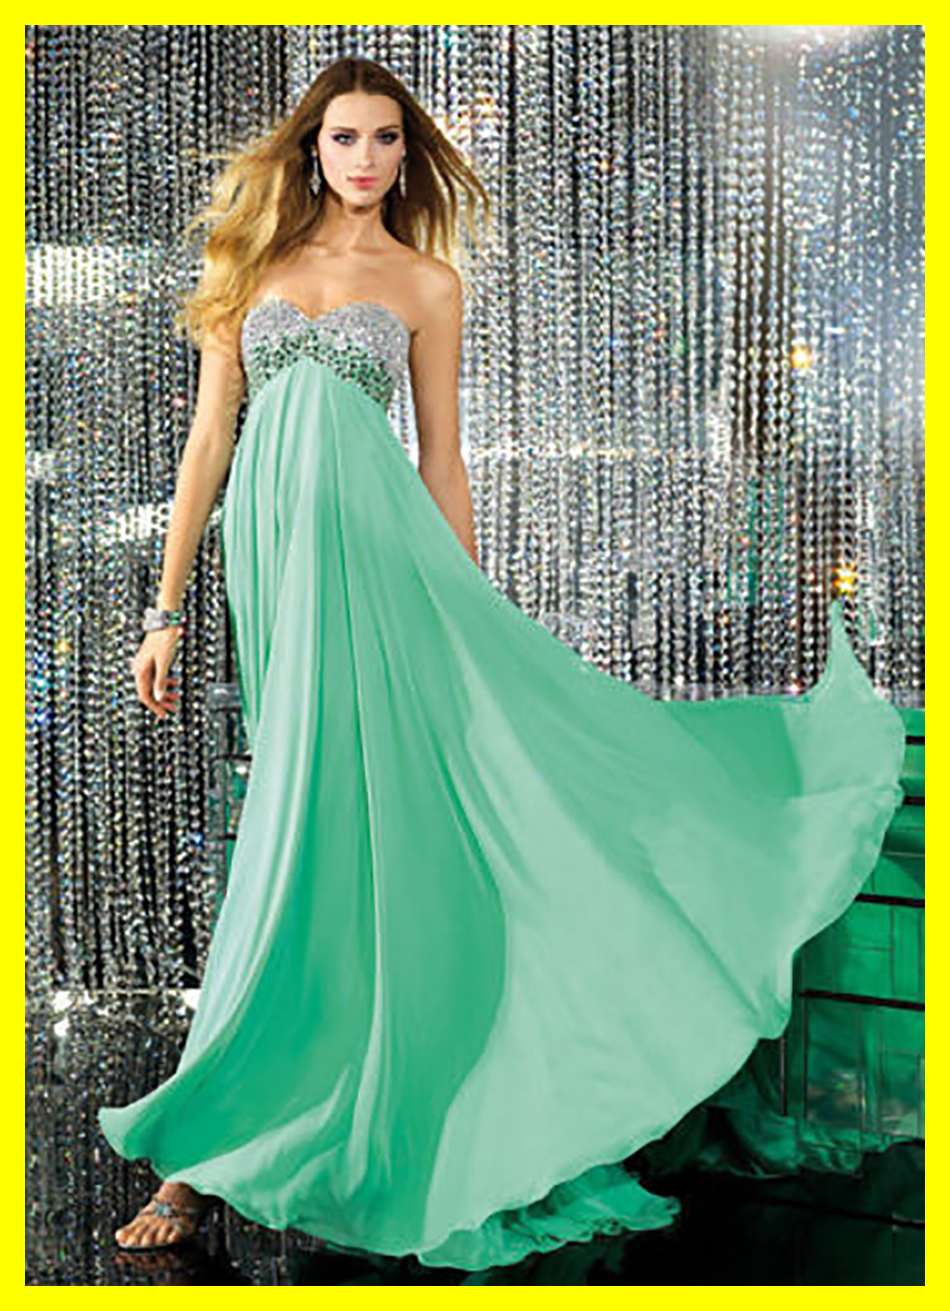 Next online party dresses - Party Dresses Next Day Delivery